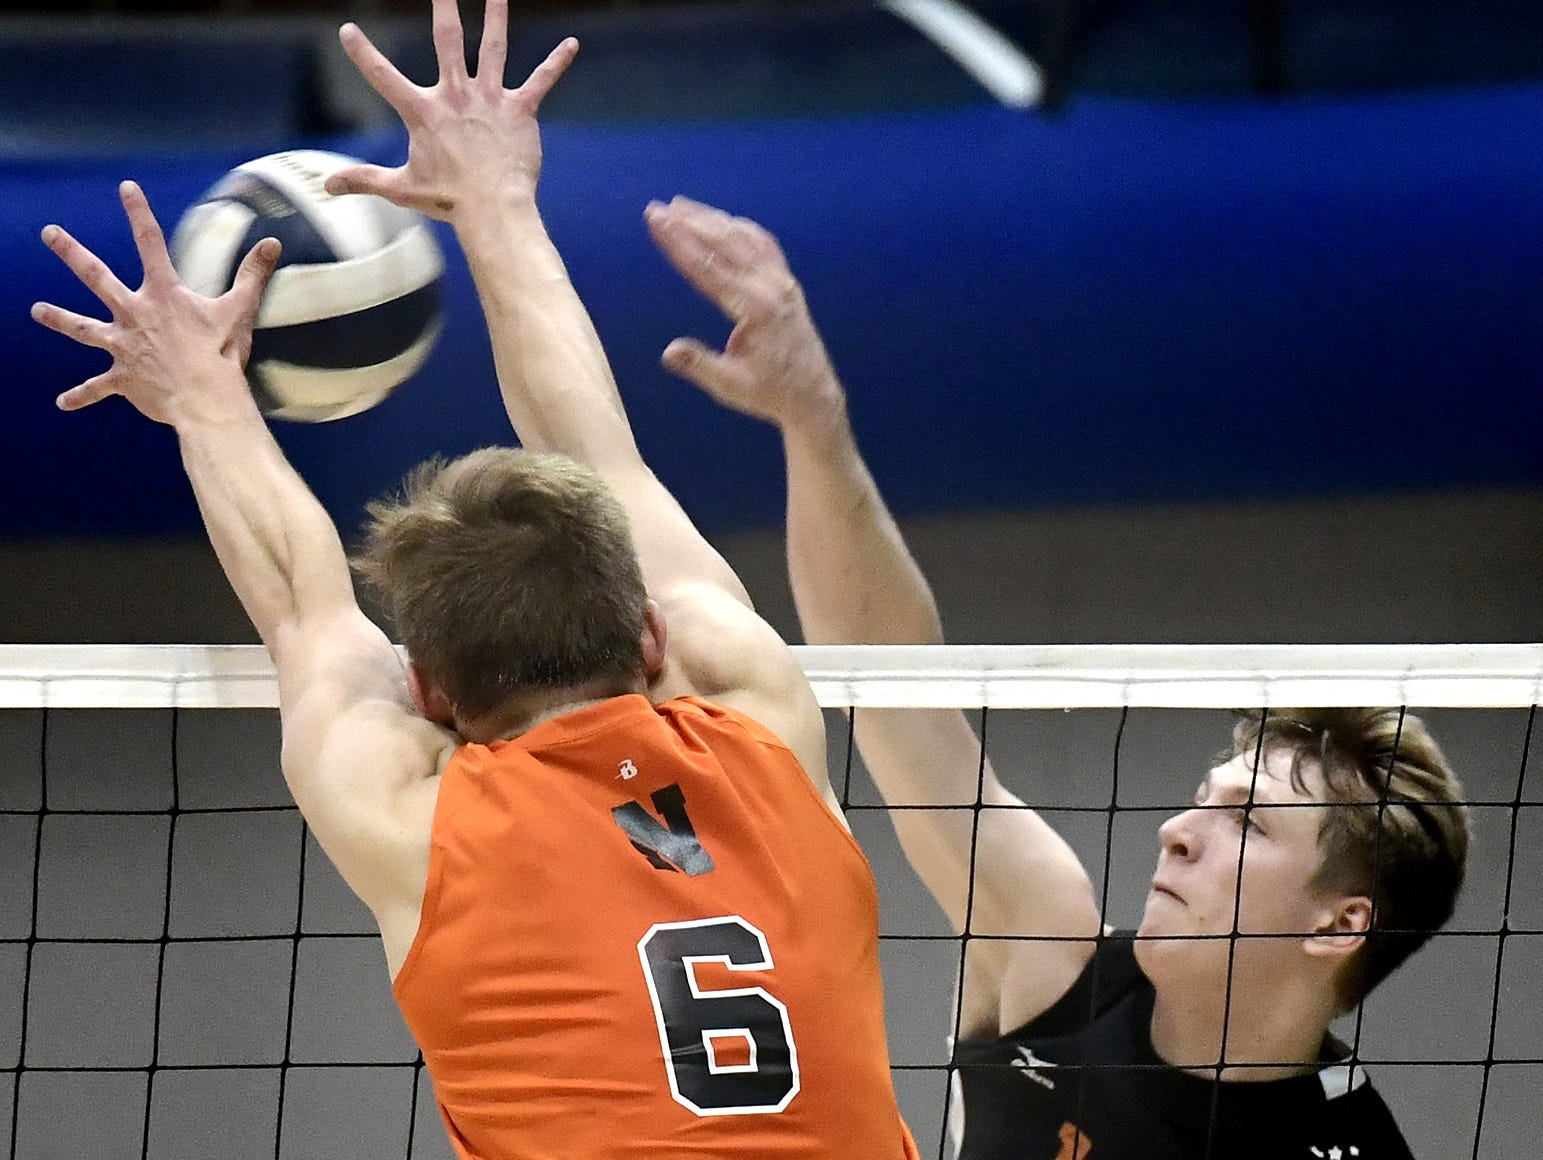 Central York's Braden Richard is challenged by Northeastern's Austin Richards in the York-Adams boys' volleyball championship match at Dallastown Tuesday, May 14, 2019. Bill Kalina photo